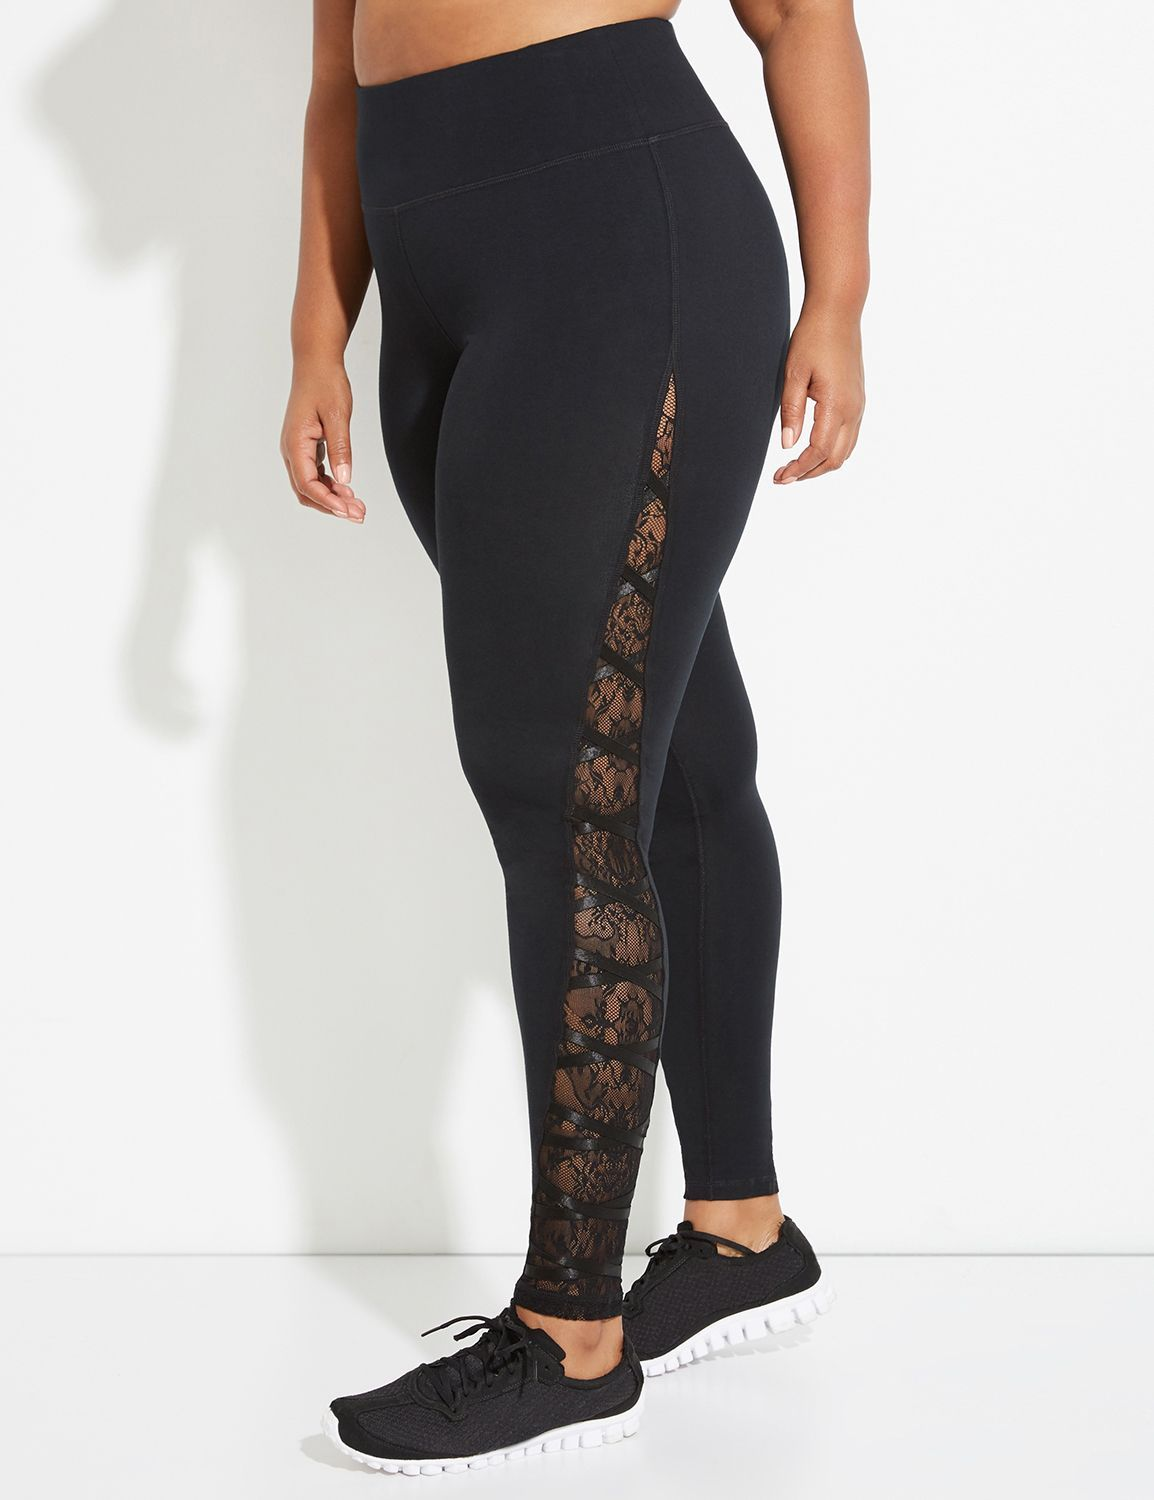 170838f6651 Signature Stretch Active Legging with Lace Mesh Inset